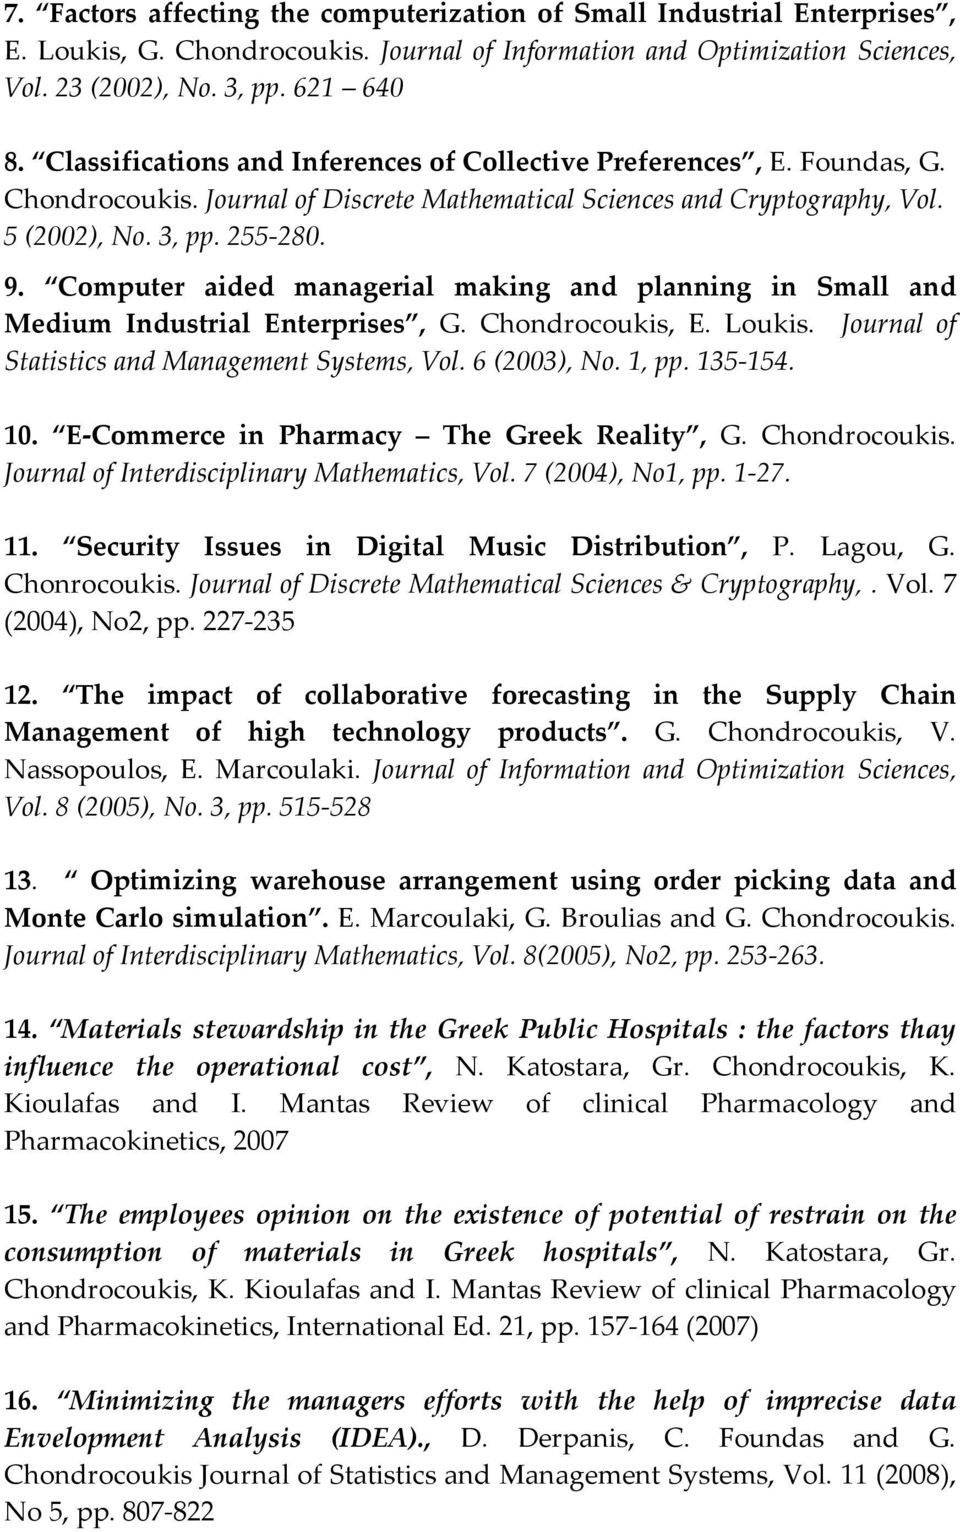 Computer aided managerial making and planning in Small and Medium Industrial Enterprises, G. Chondrocoukis, E. Loukis. Journal of Statistics and Management Systems, Vol. 6 (2003), No. 1, pp. 135-154.